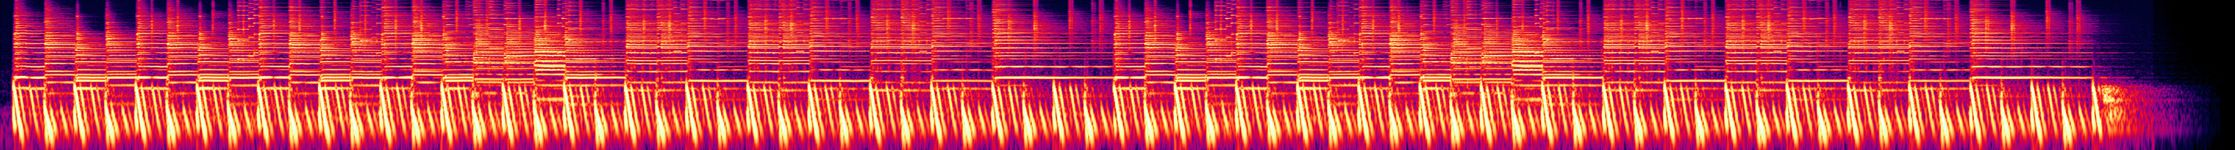 Science and Health - Spectrogram.jpg